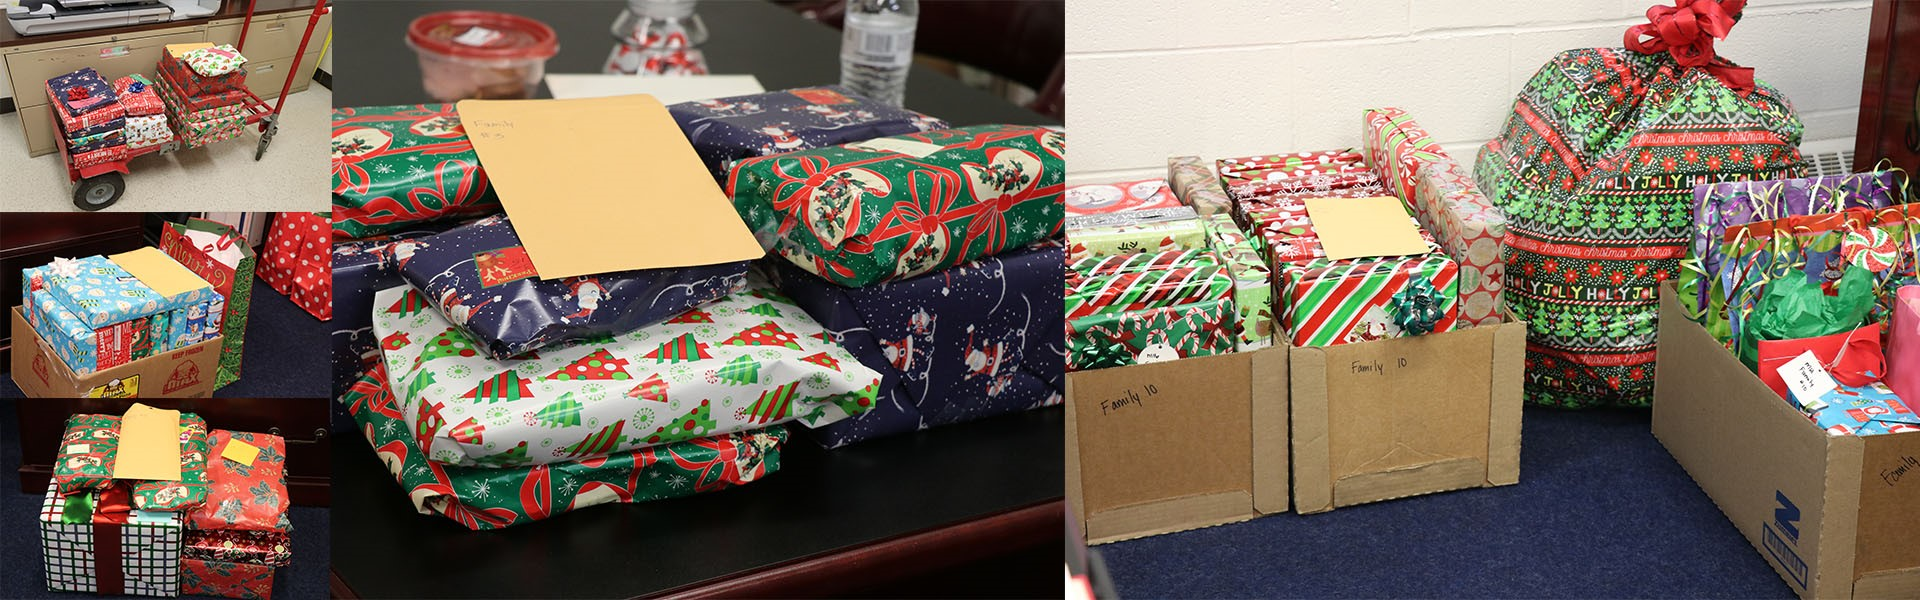 CHS Adopts Families for the Holidays